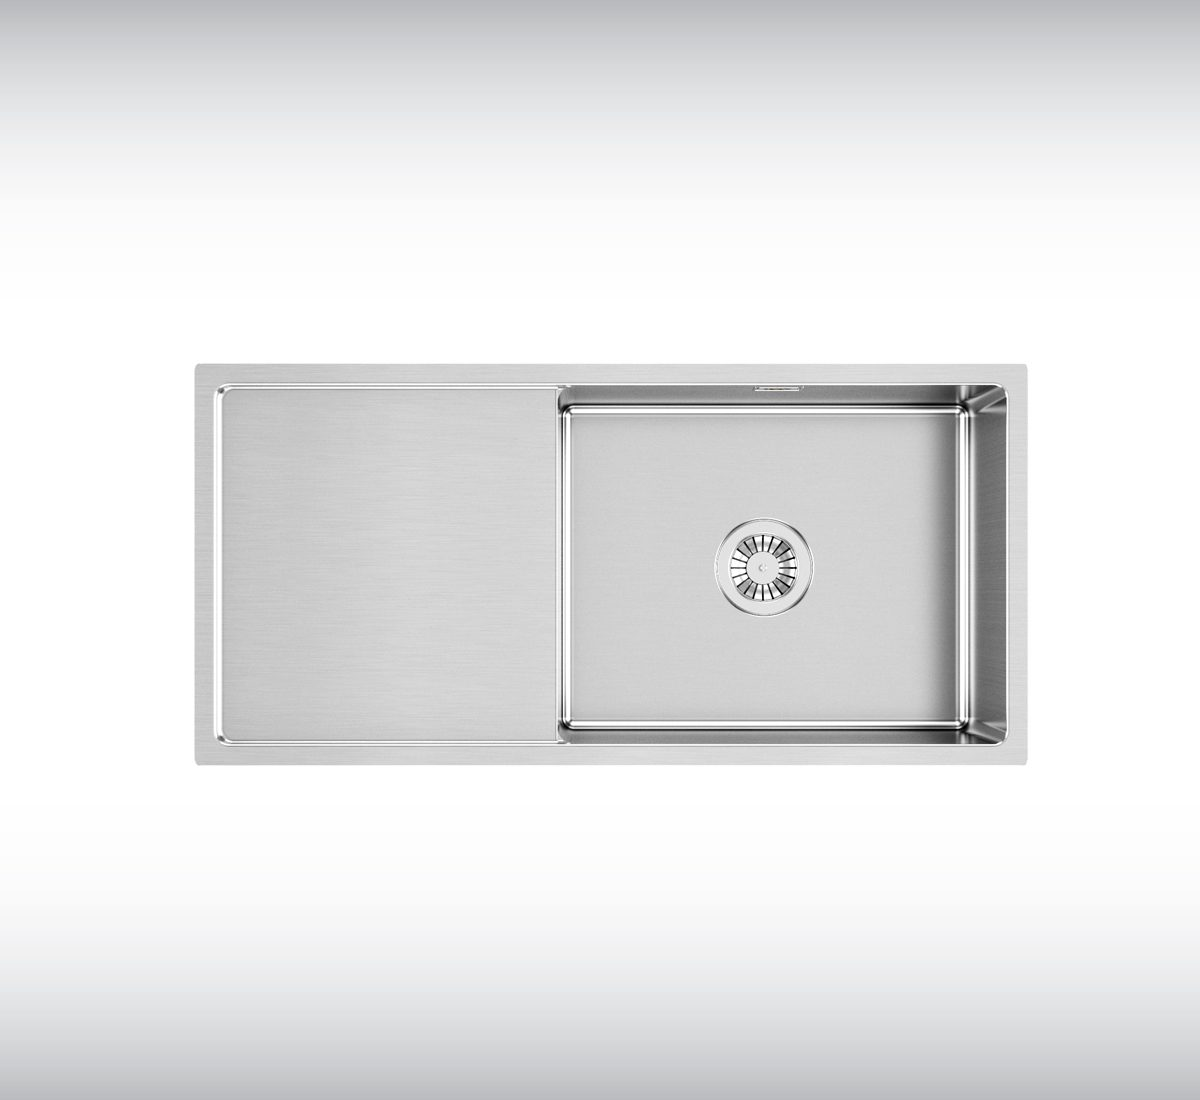 stainless steel sink UBSH-930D